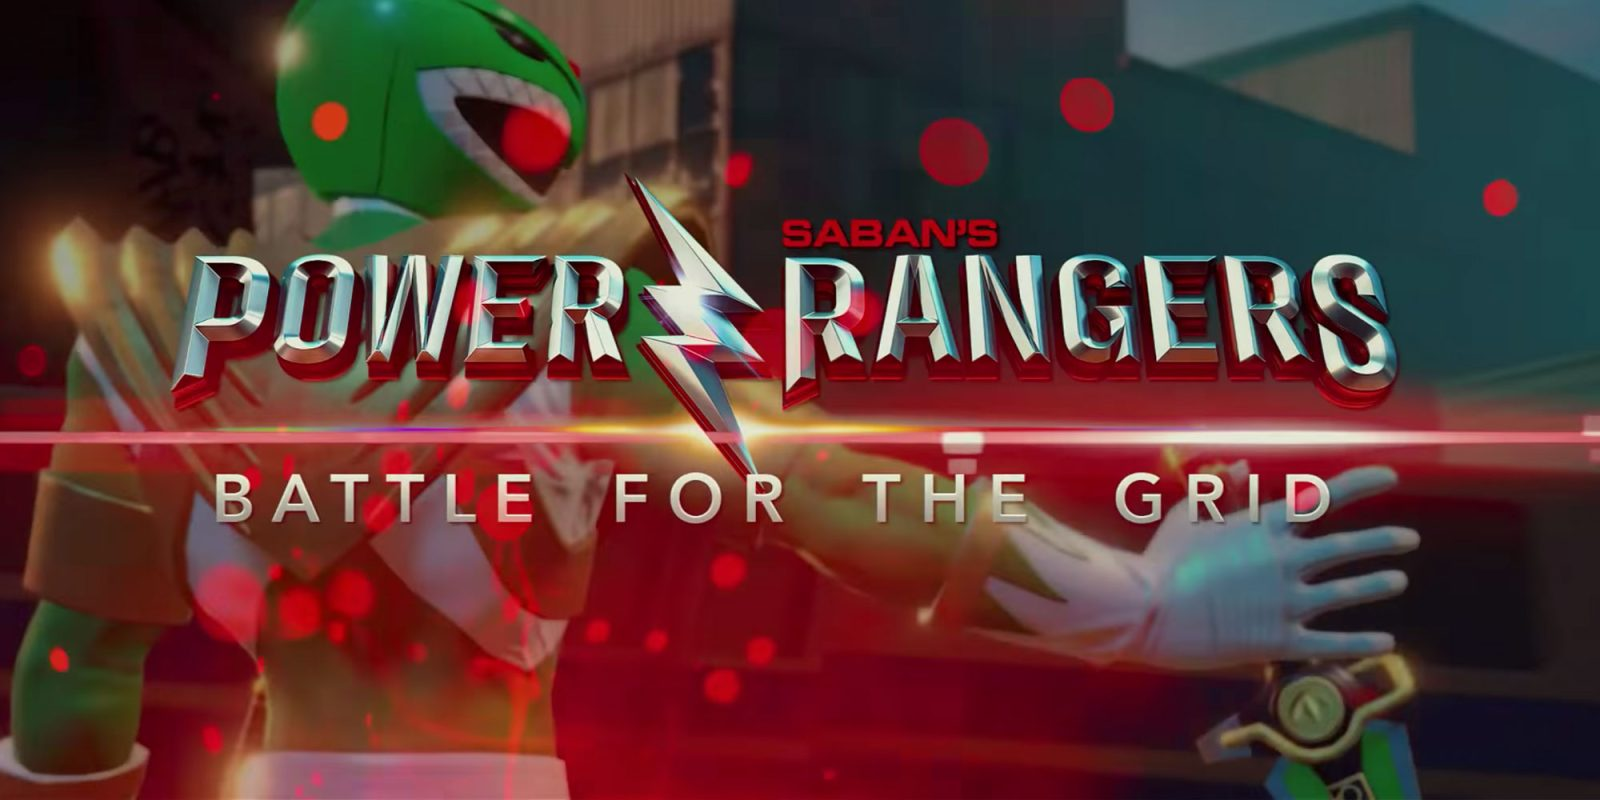 There's A Power Rangers Fighting Game Coming In April